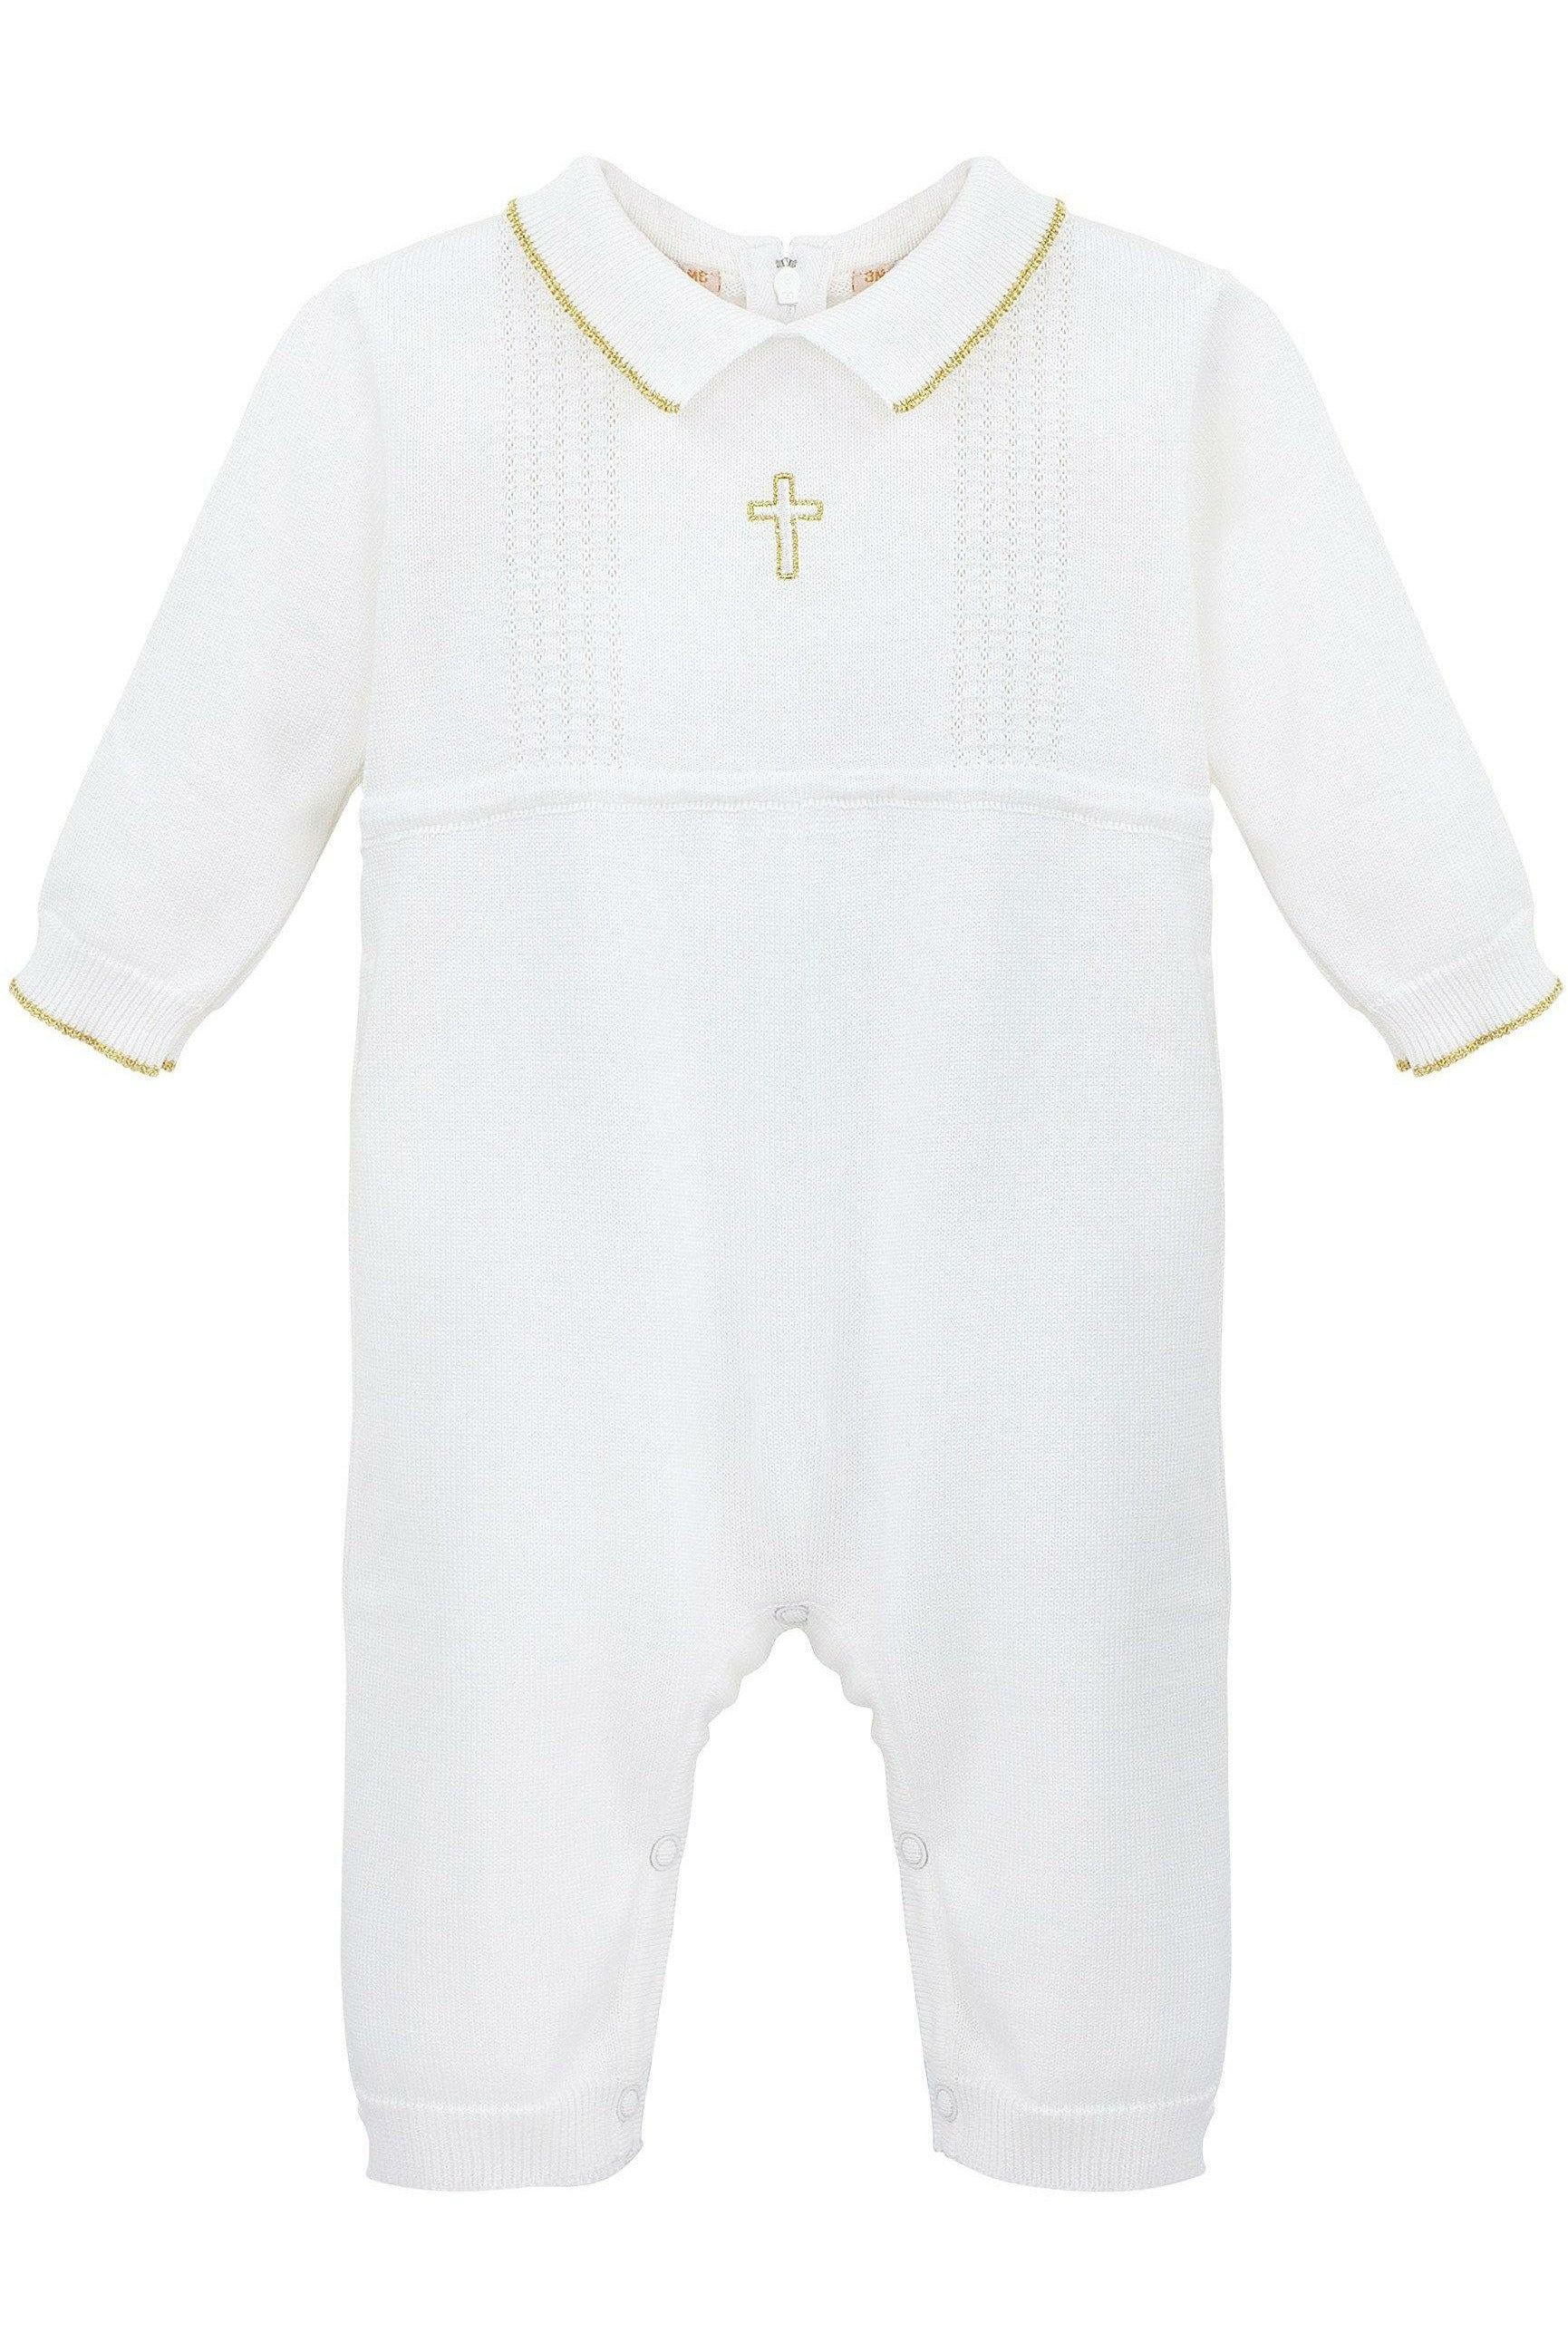 Baby Boys Baptism Romper and Hat with Embroidered Cross White 12 Months